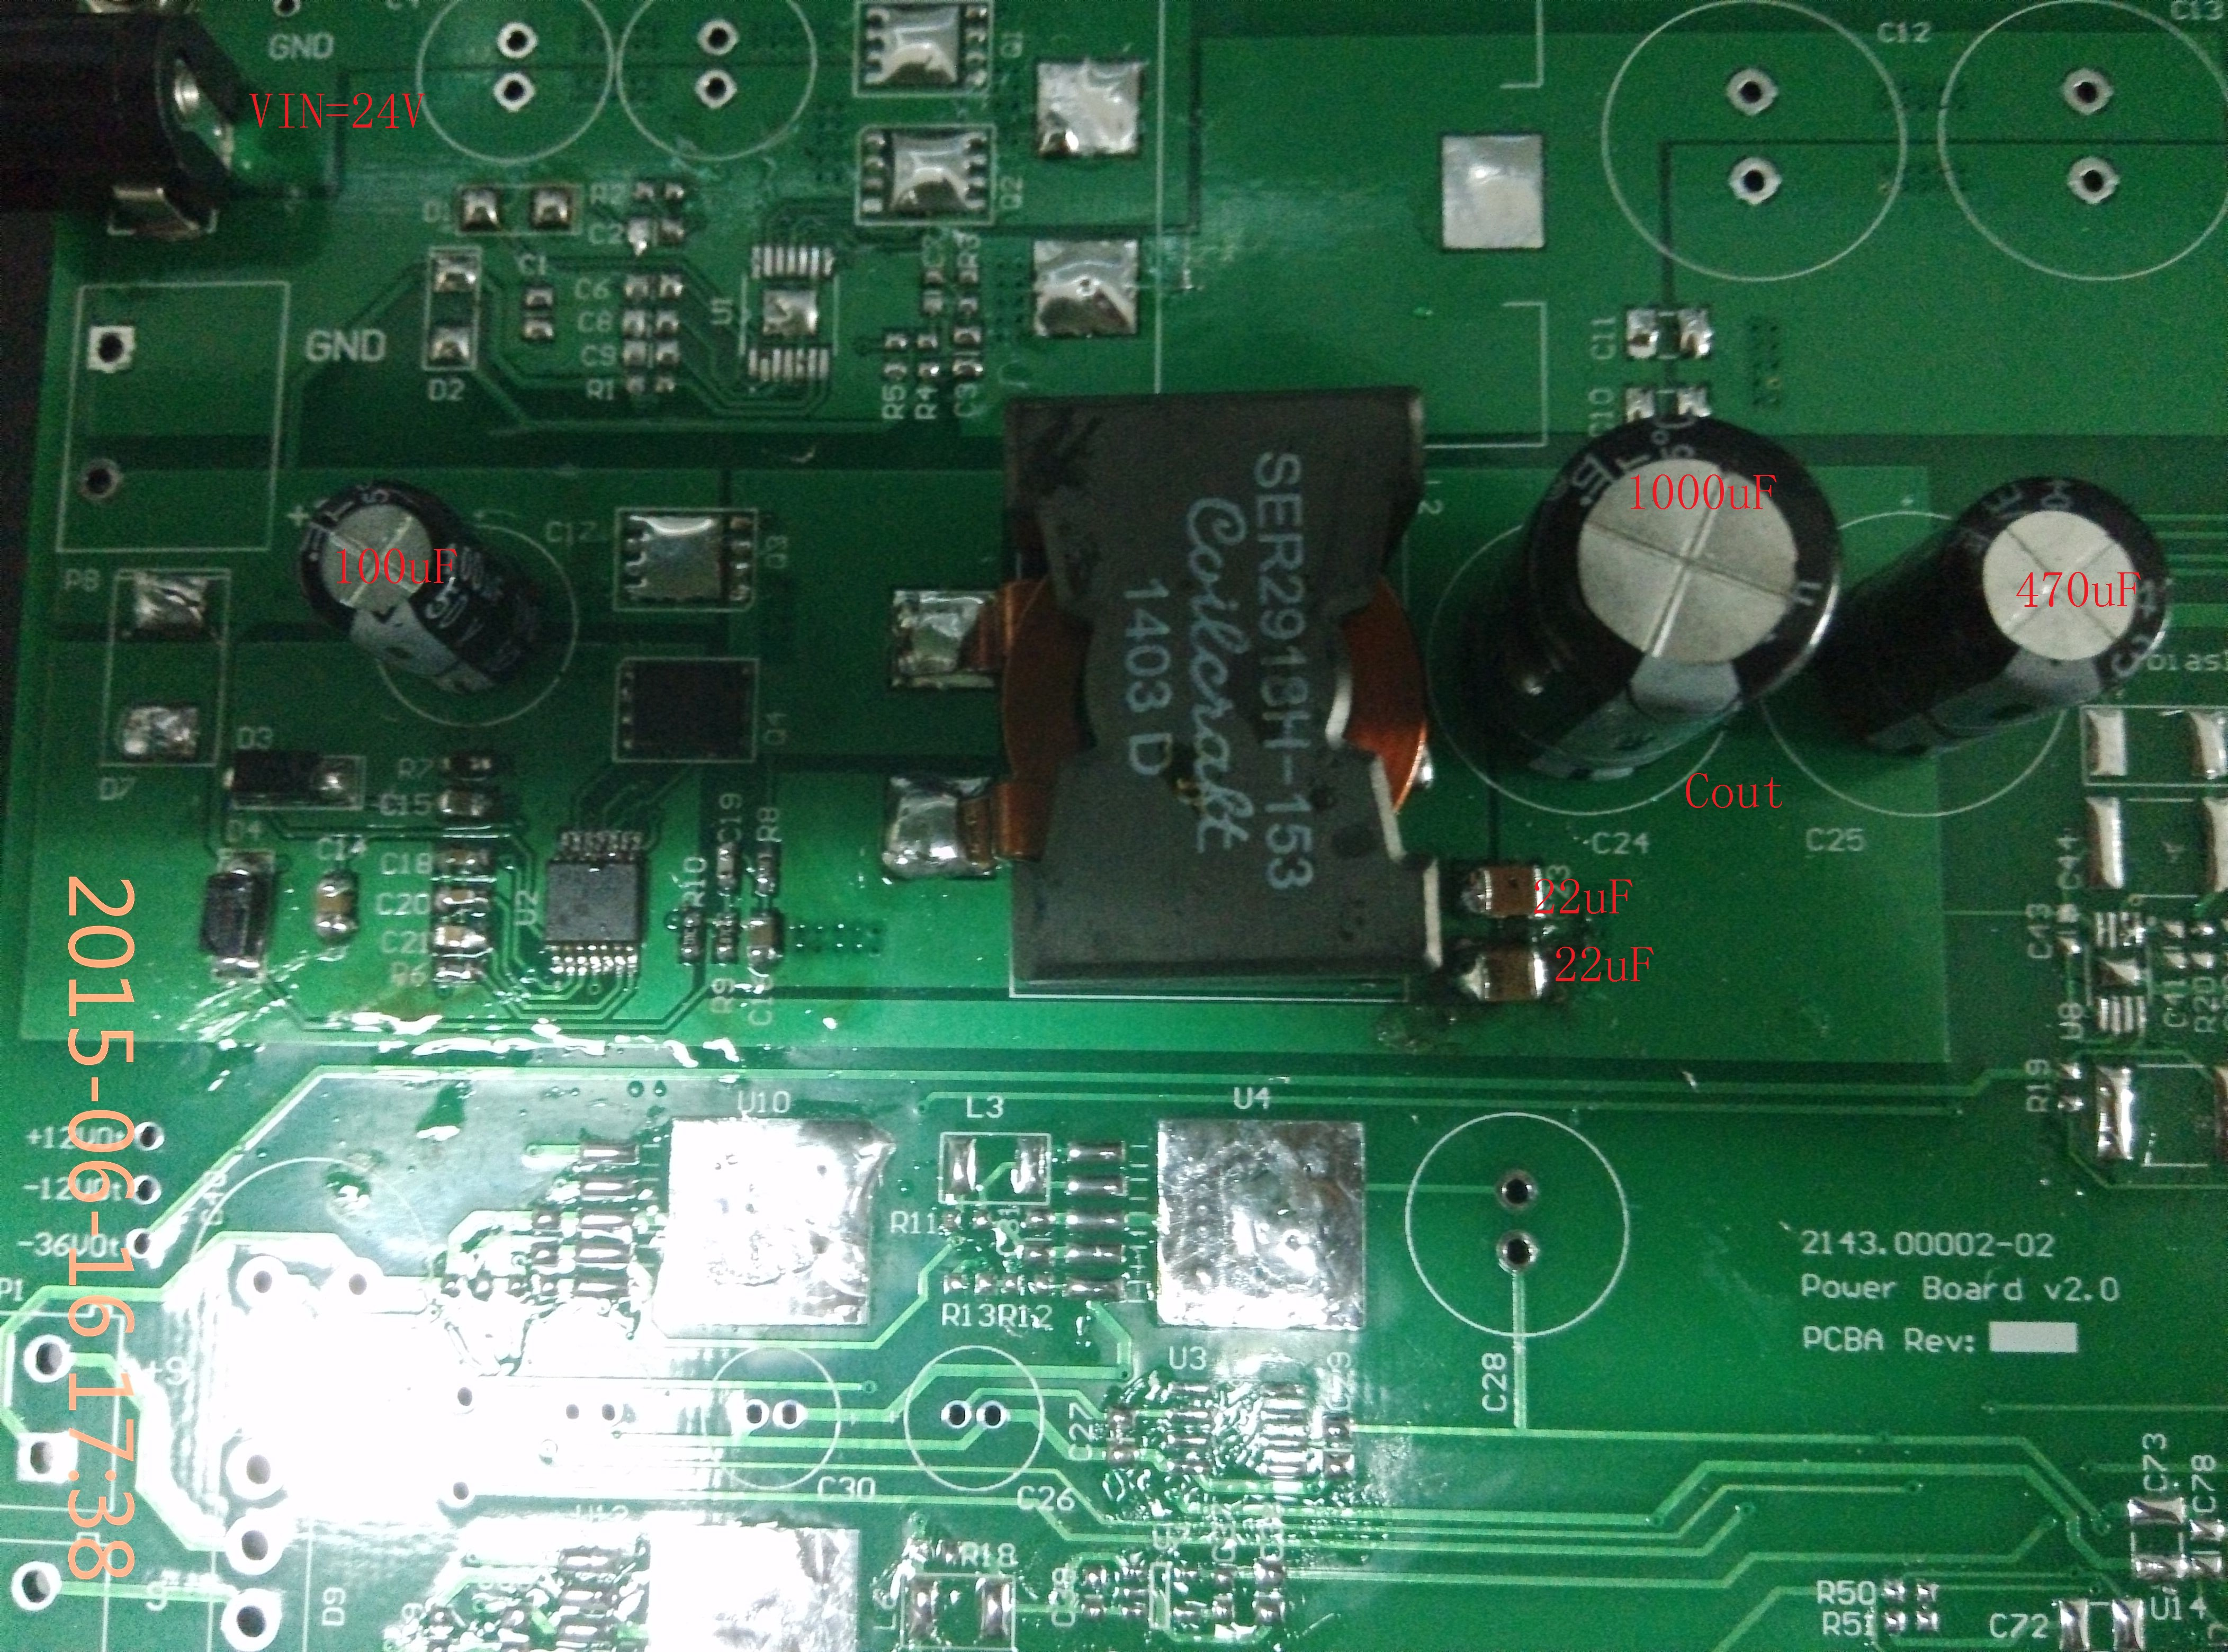 Lm3150 Output 5v10a Load A Resistor Of 1r Then The Upper Mosfet Power Supply Non Isolated Dc Forum Ti E2e Vin So My Question Is What Cause Q3s Broken And Can I Do Next For 5v010a Circuit Thank You Your Reply